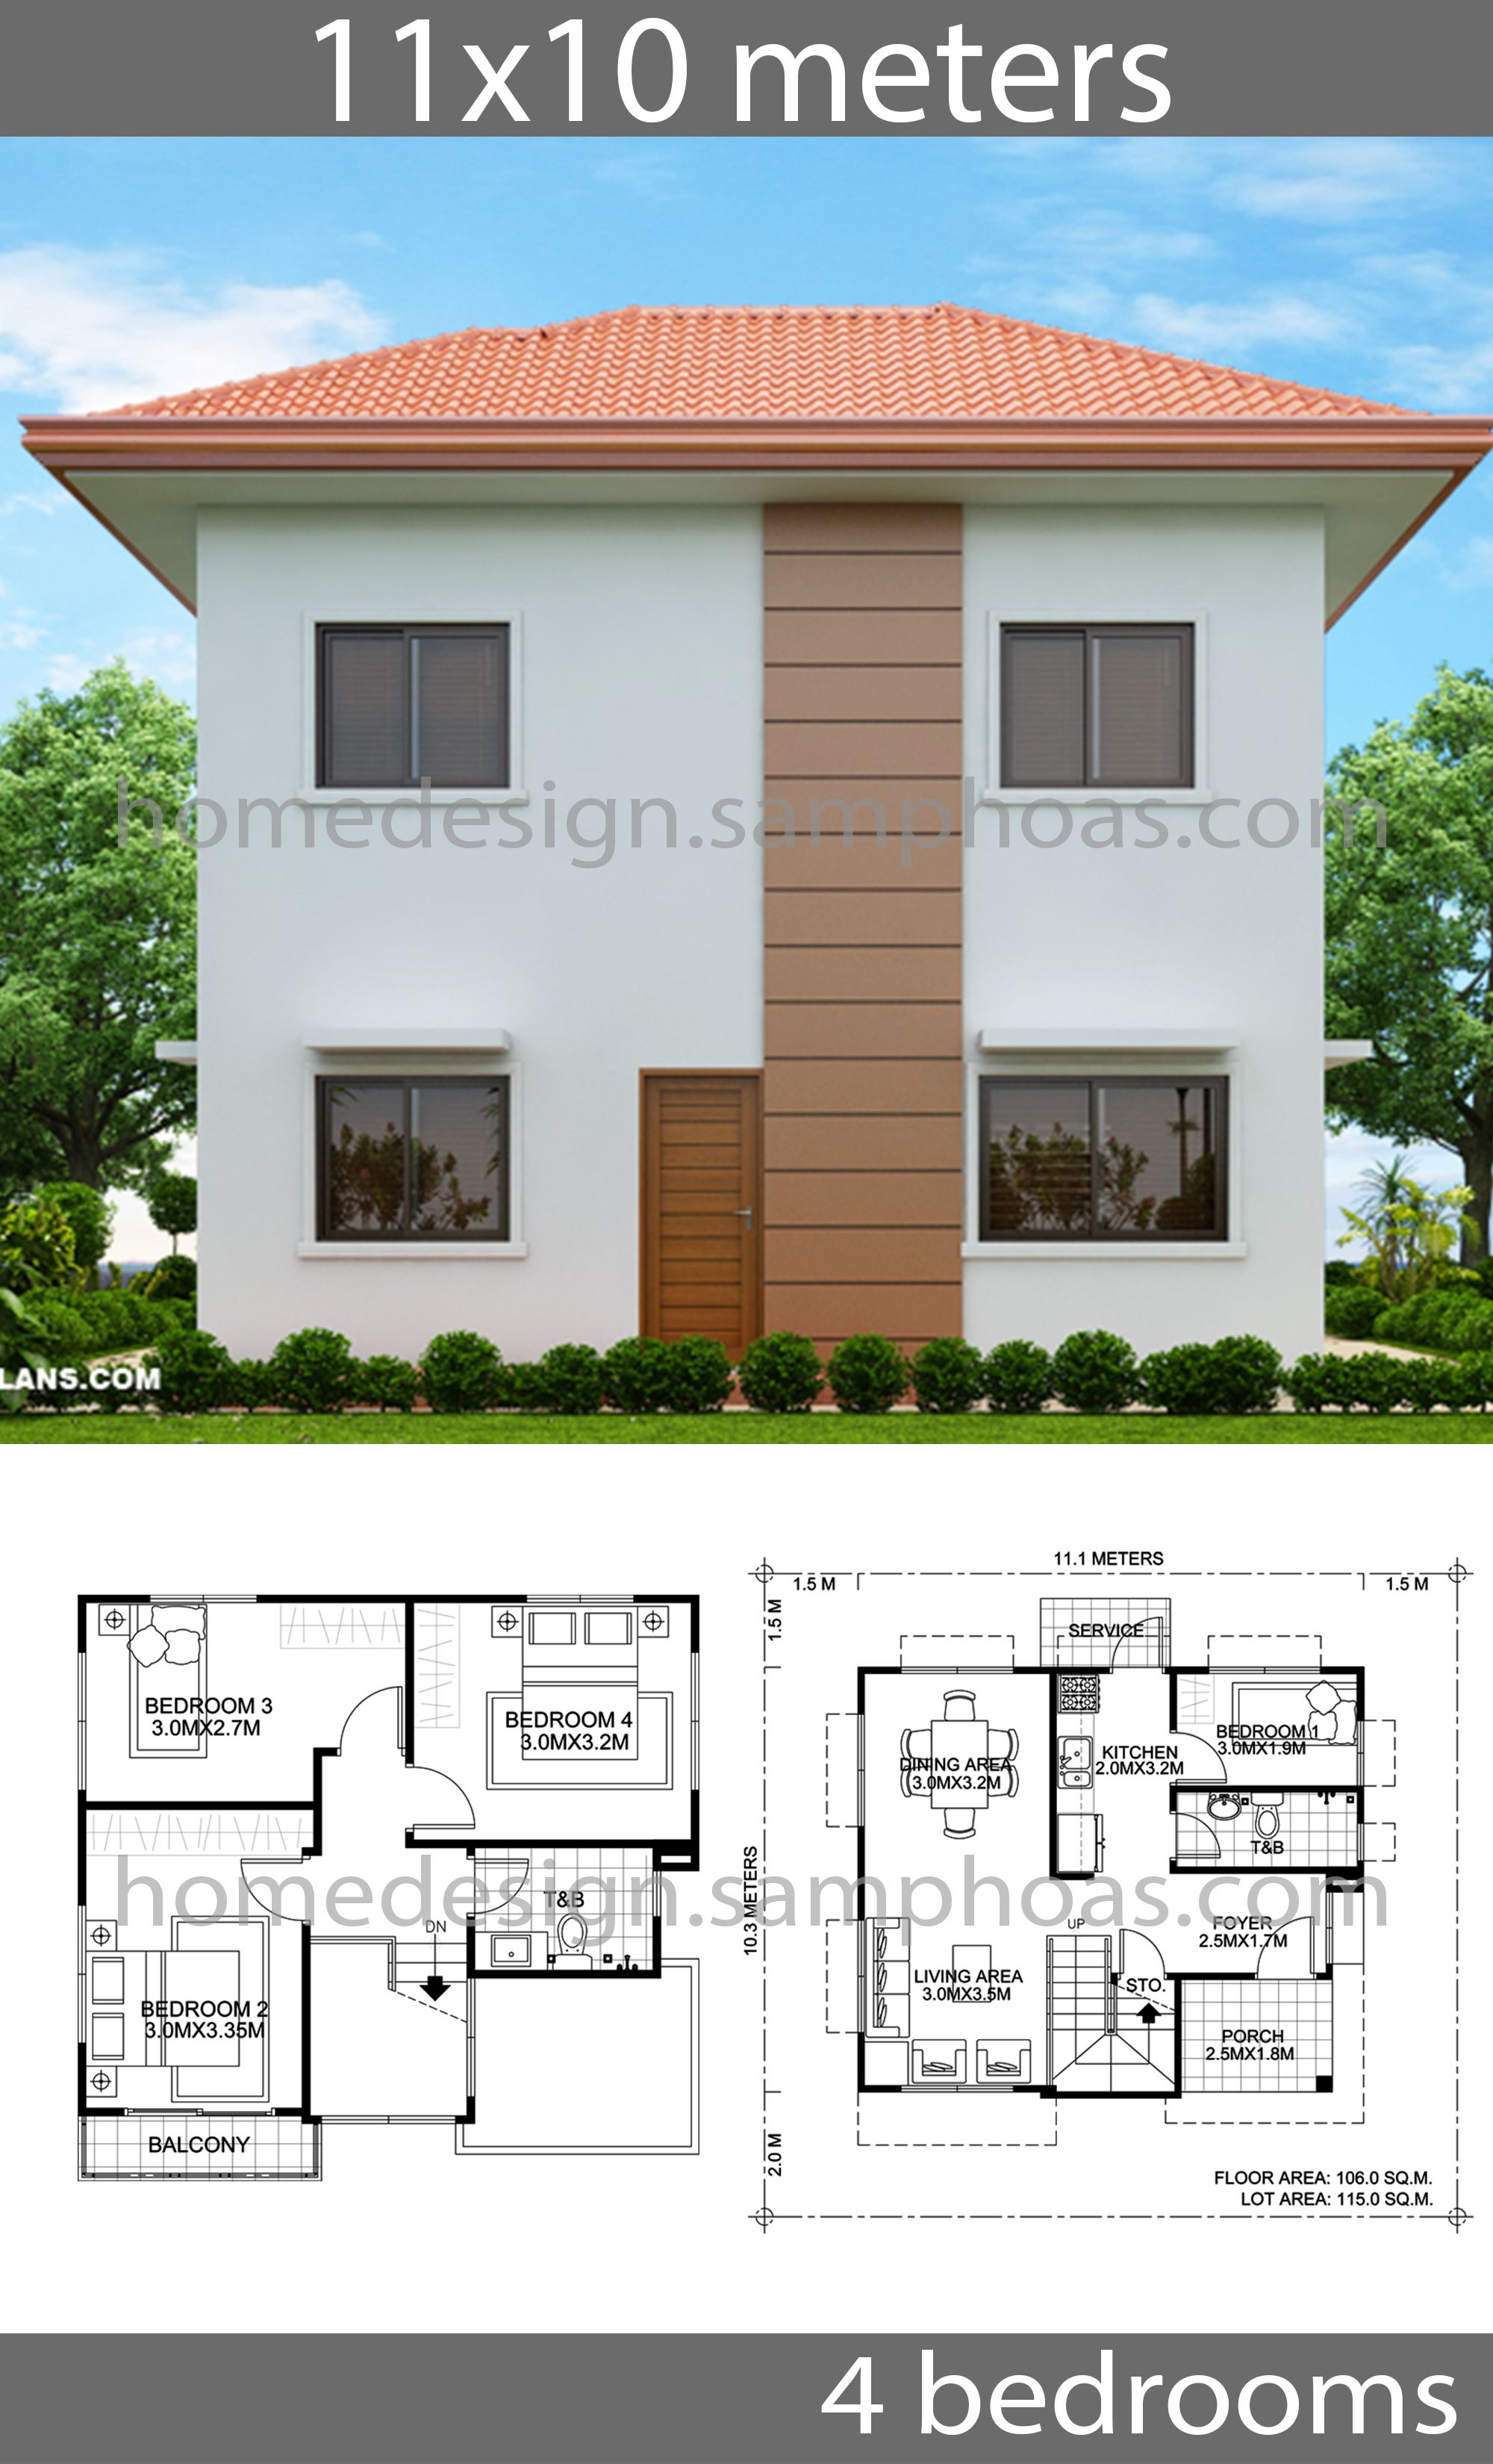 Pin By Umar On House Plans Idea Affordable House Plans Beautiful House Plans House Design